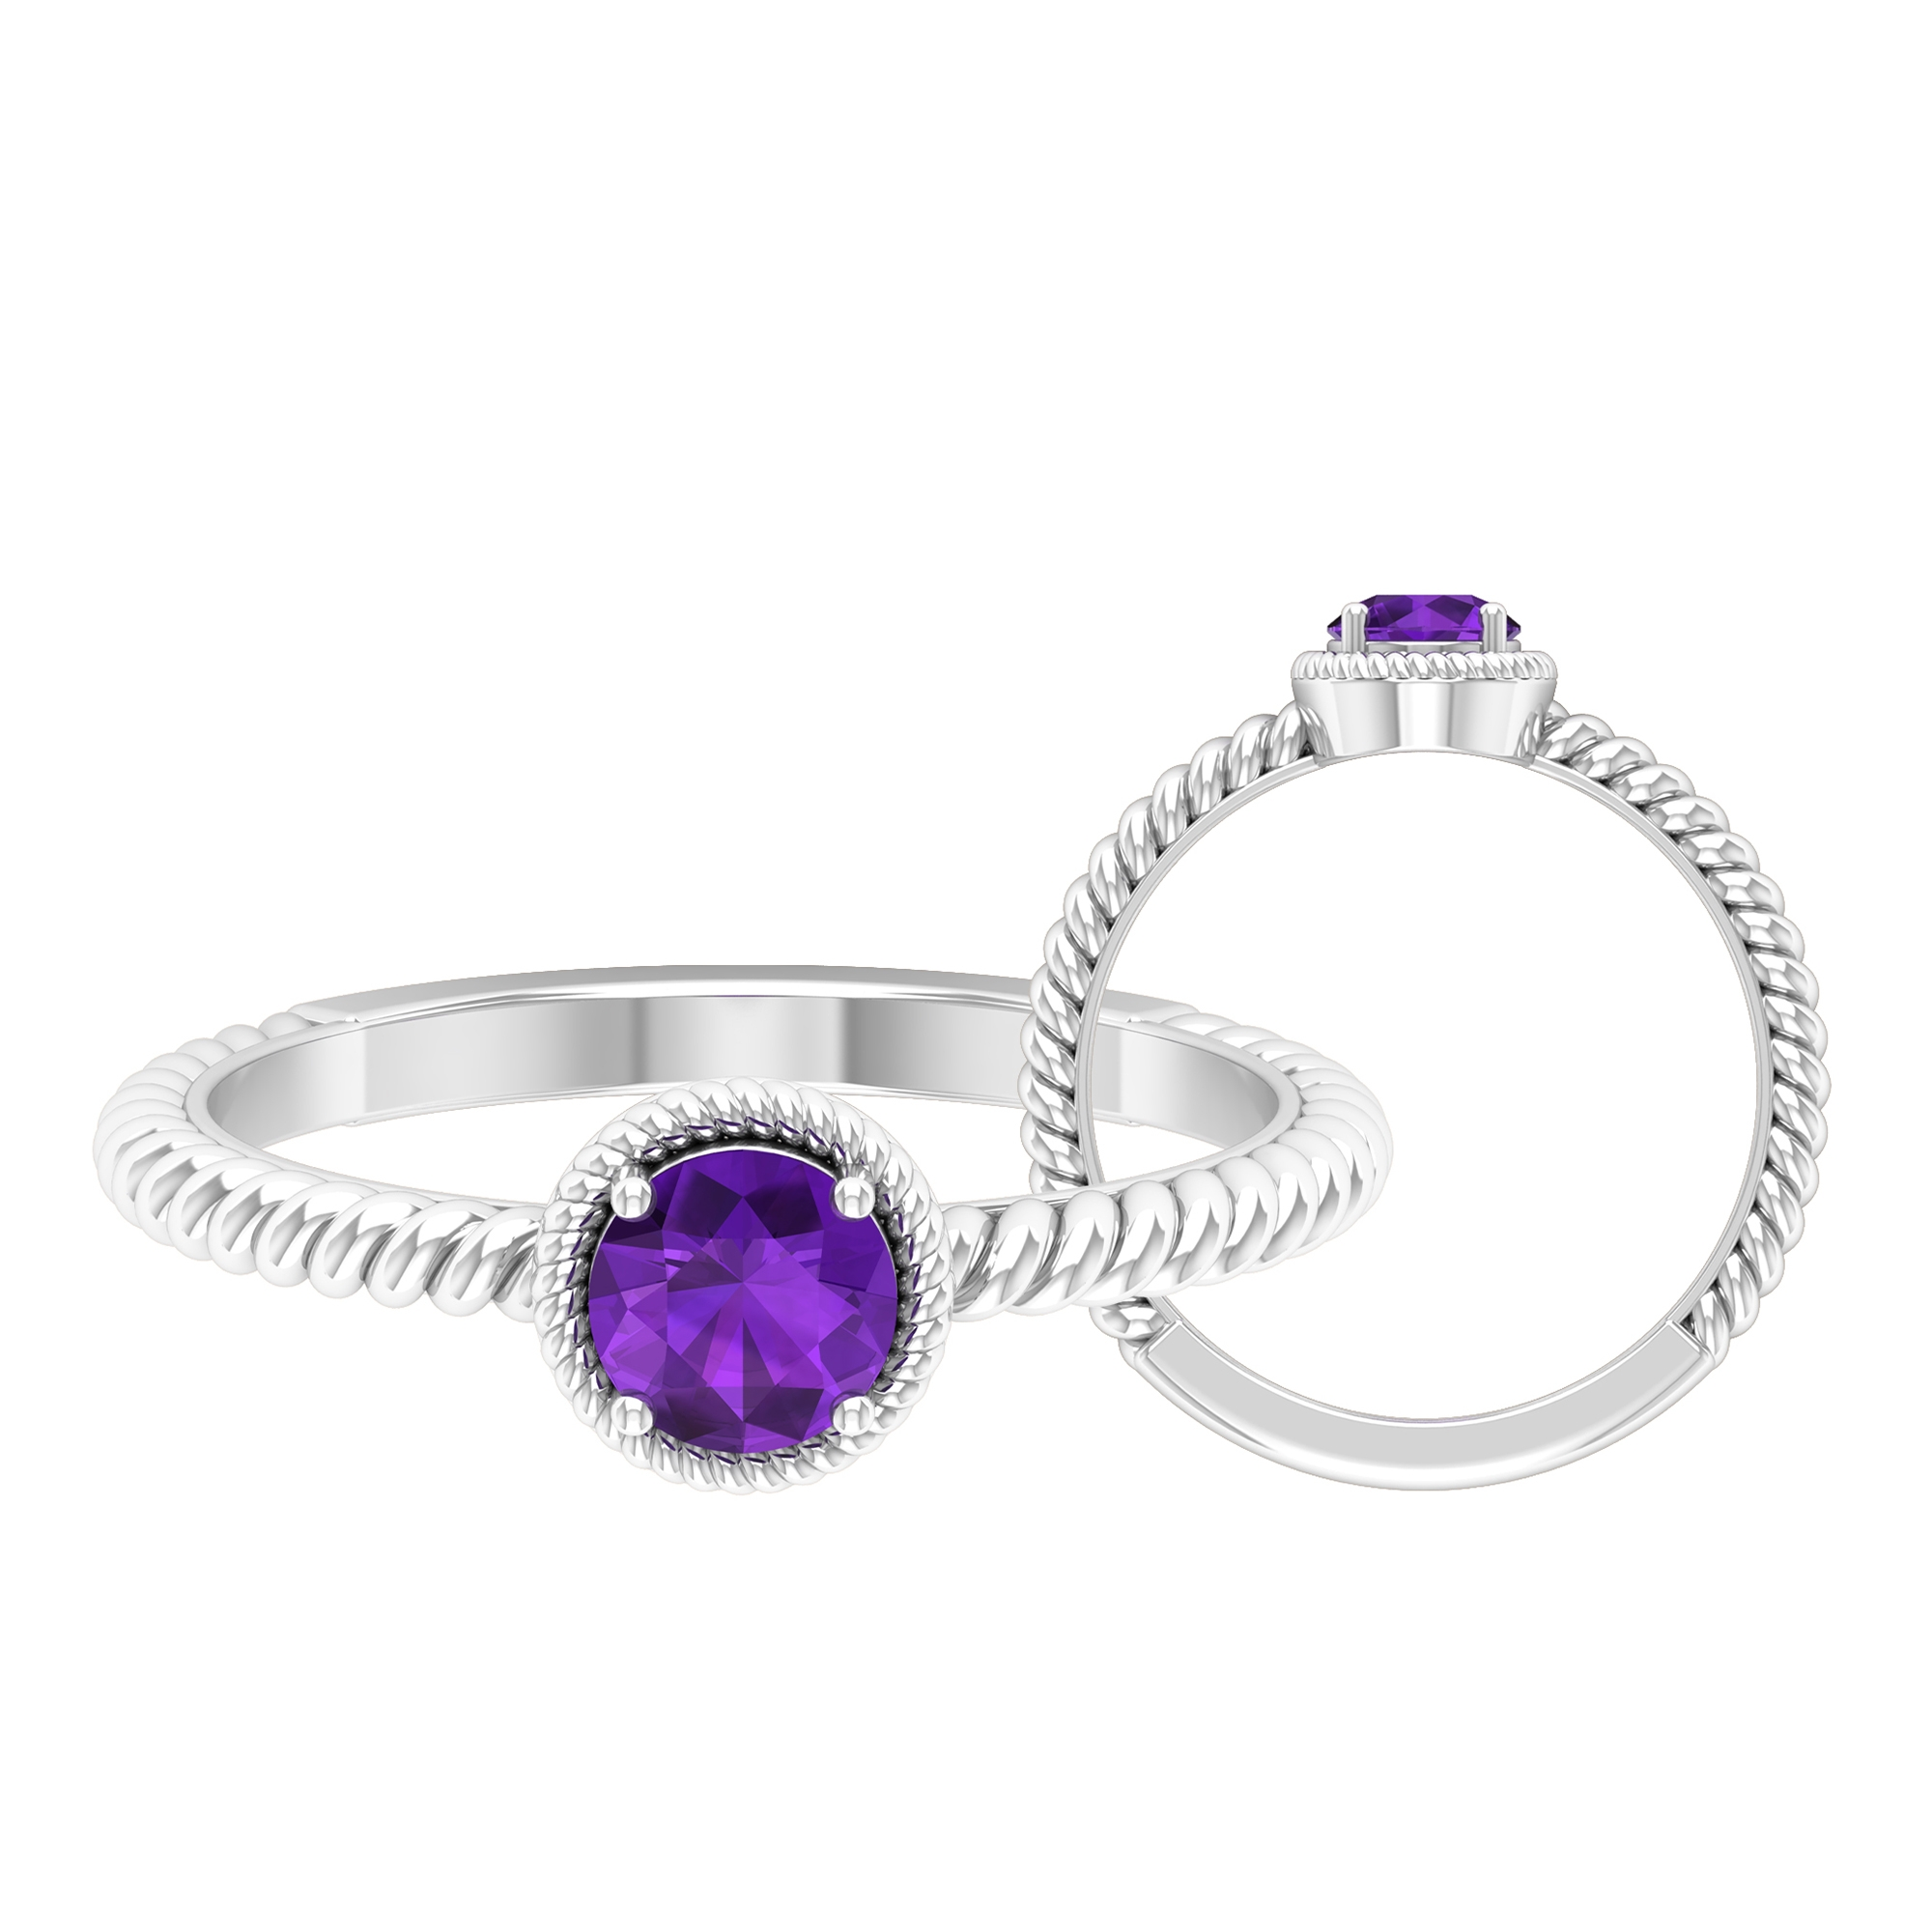 5 MM Round Shape Solitaire Amethyst Ring in 4 Prong Setting with Twisted Rope Frame